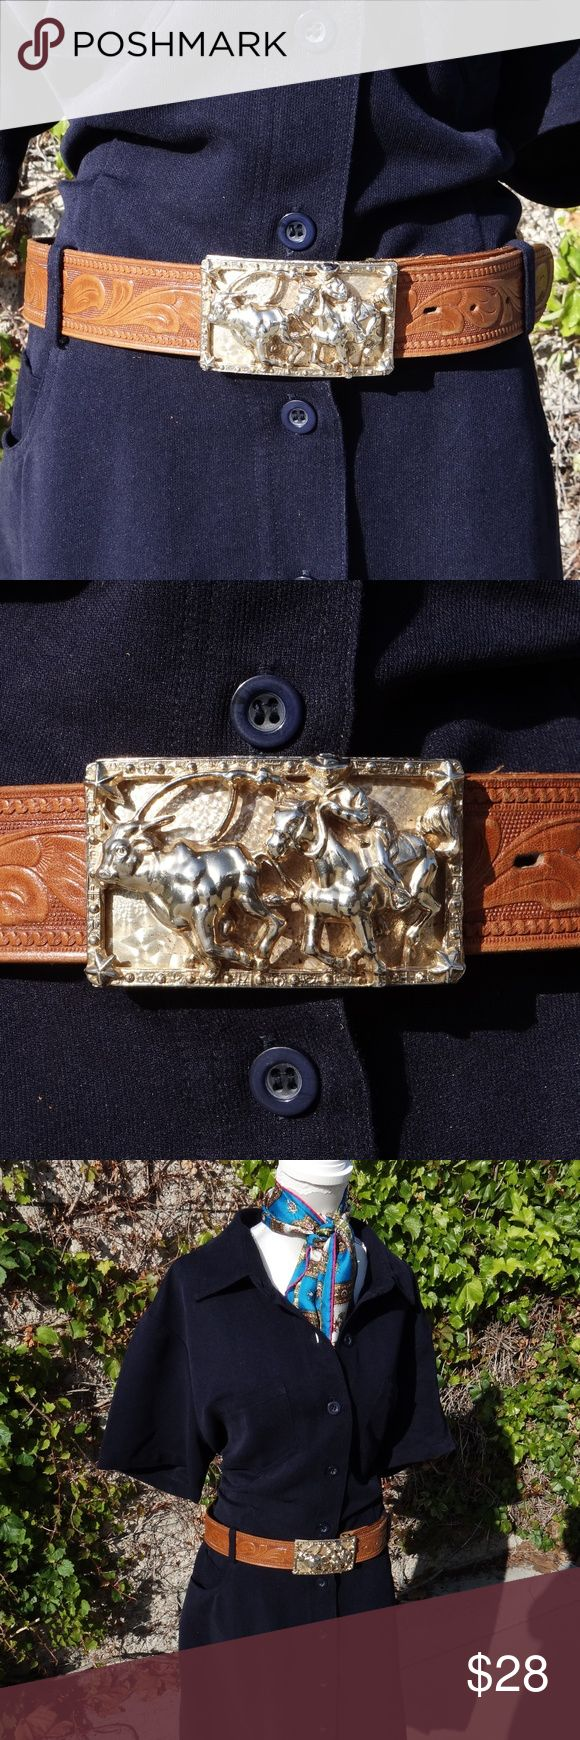 """VTG Metal Rodeo Belt Buckle & Leather Belt Let your Cowgirl come out with this awesome belt, rodeo style metal buckle ( not heavy).  Top Grain saddle leather belt, light brown color. In great condition 34"""" long size:M American Vintage Accessories Belts"""